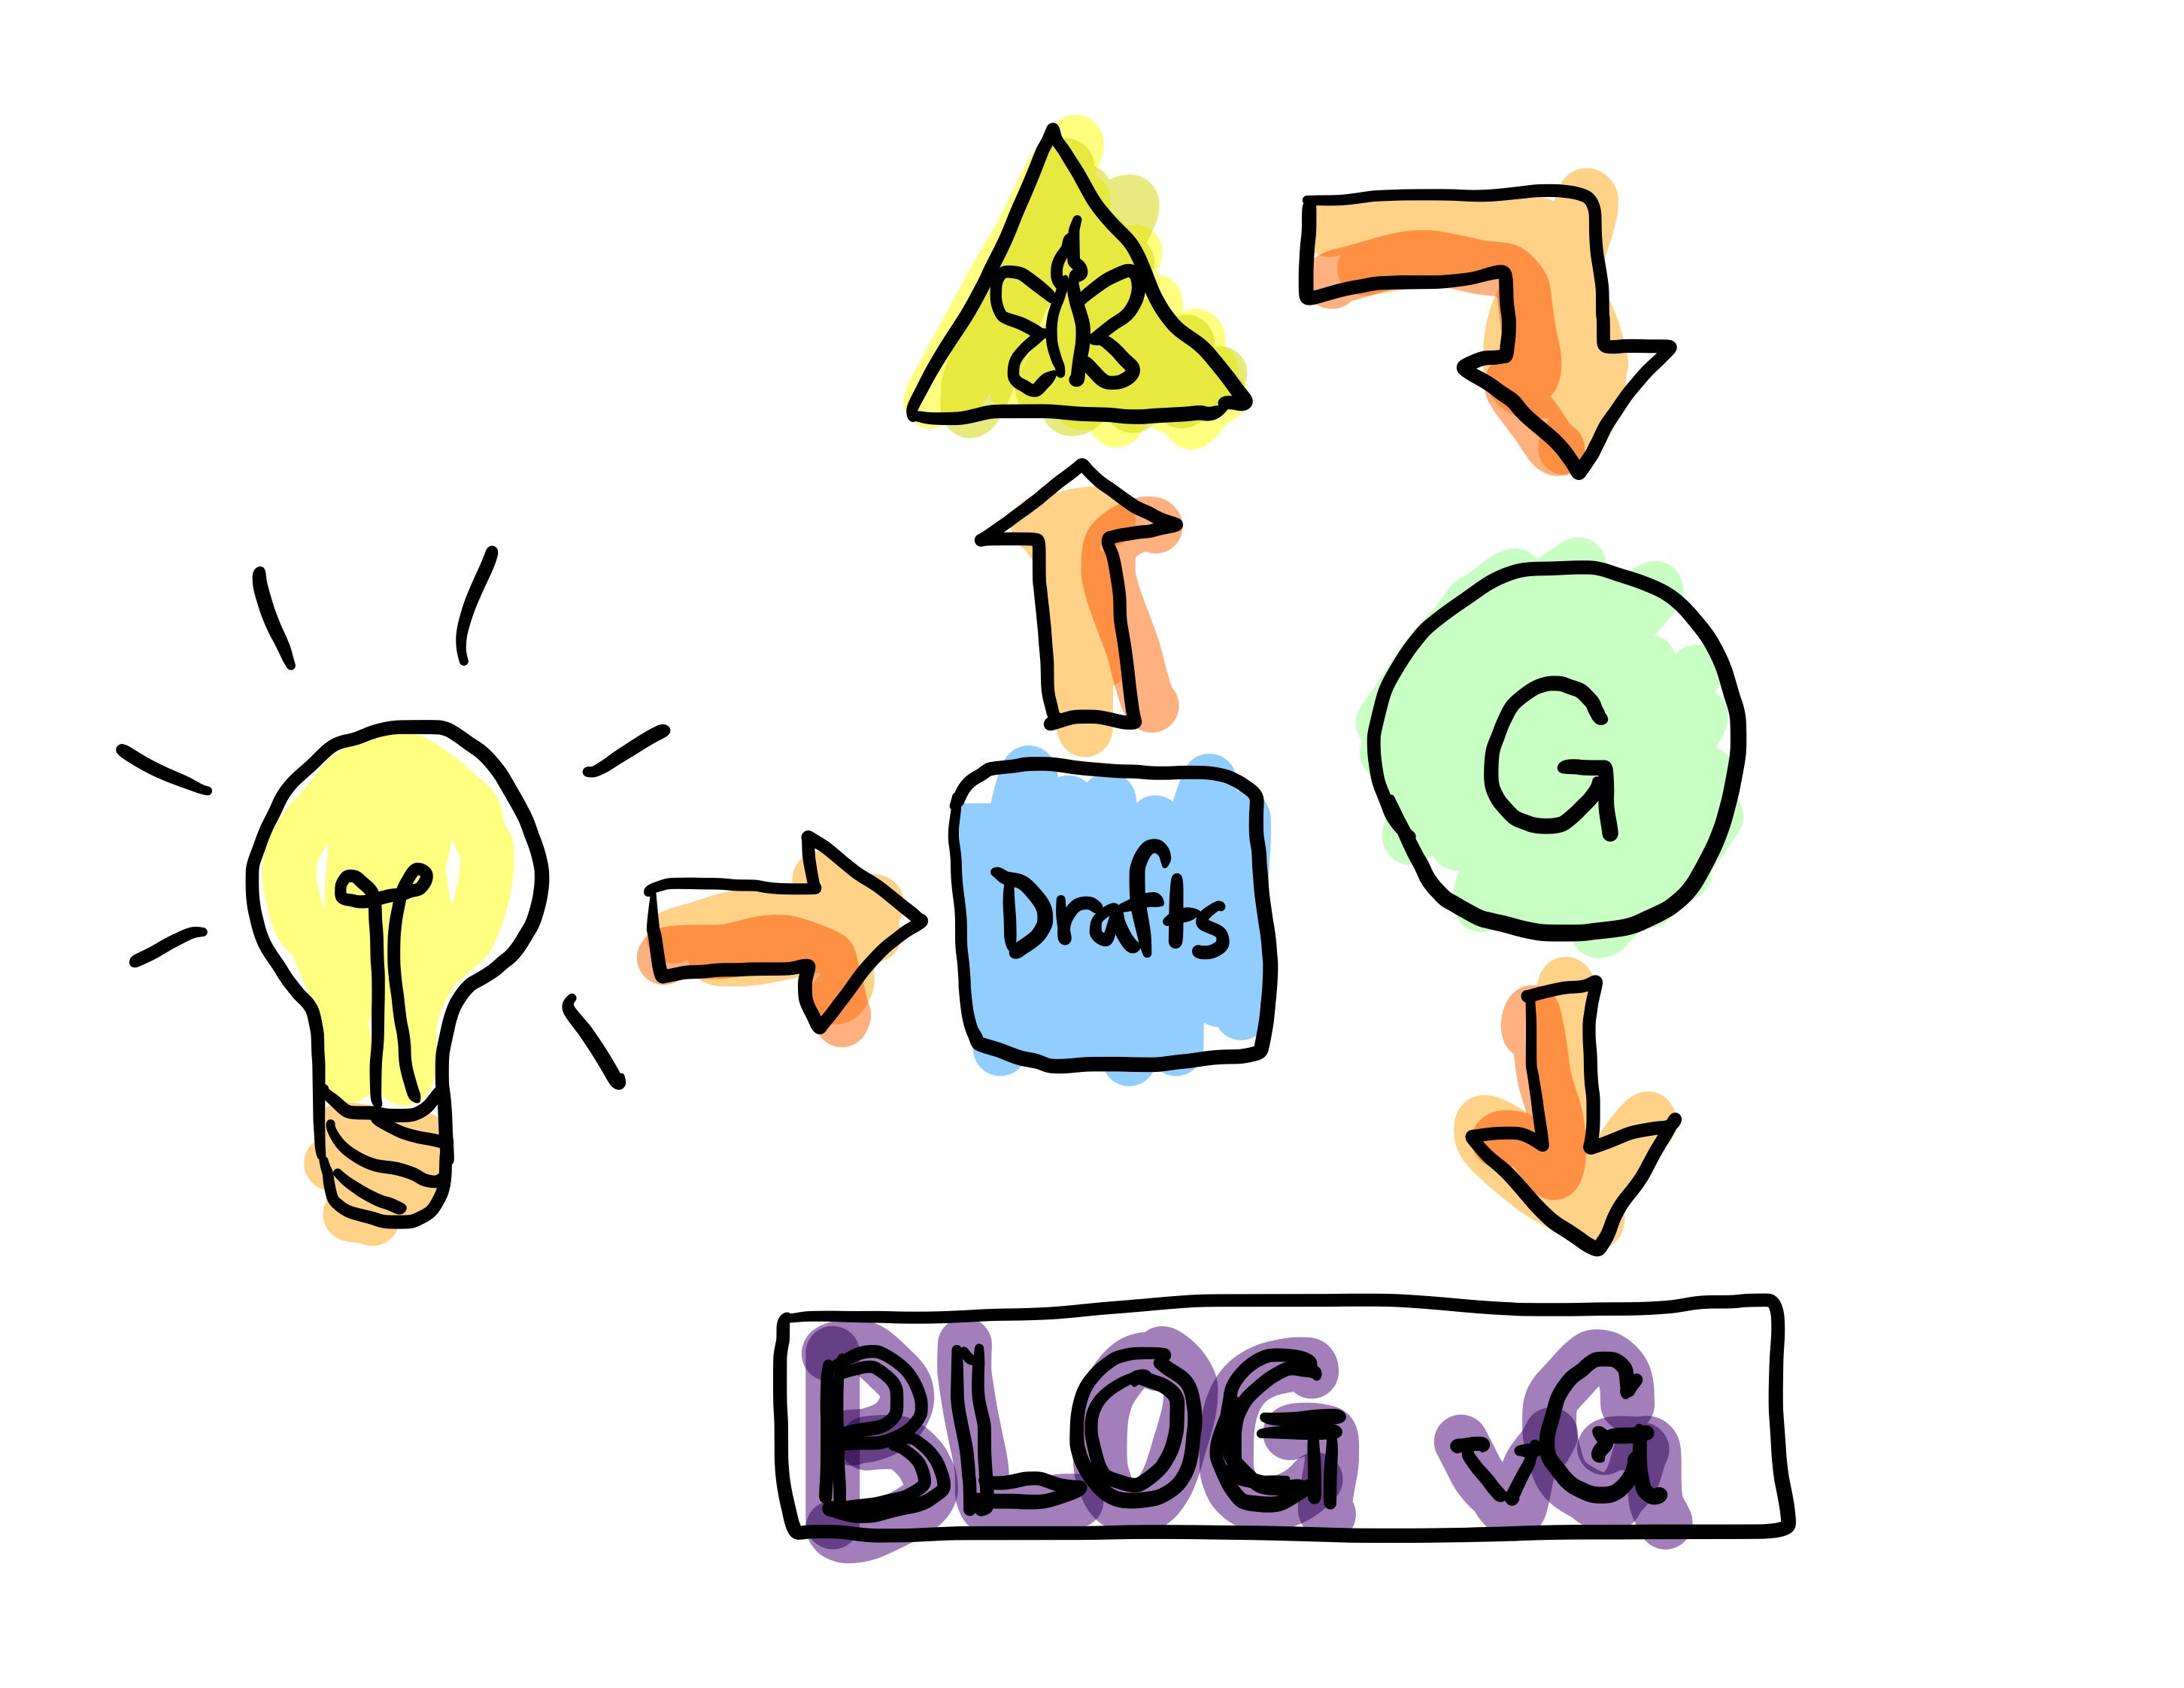 VirtuallyGeeky's Blogging Workflow